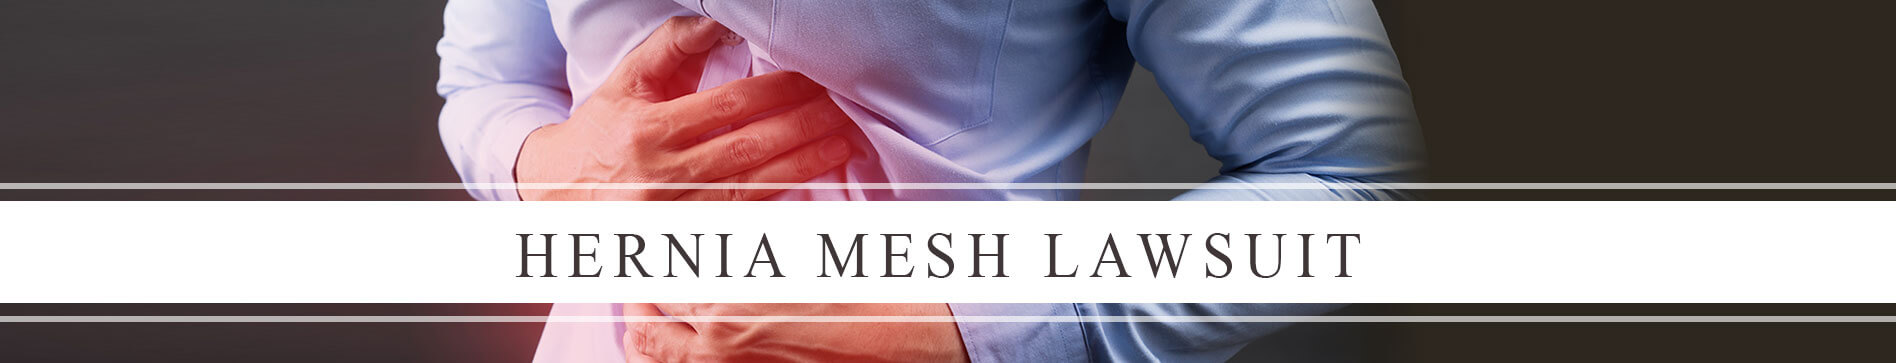 Hernia Mesh Lawsuit | Hernia Mesh Lawyers | Provost Umphrey